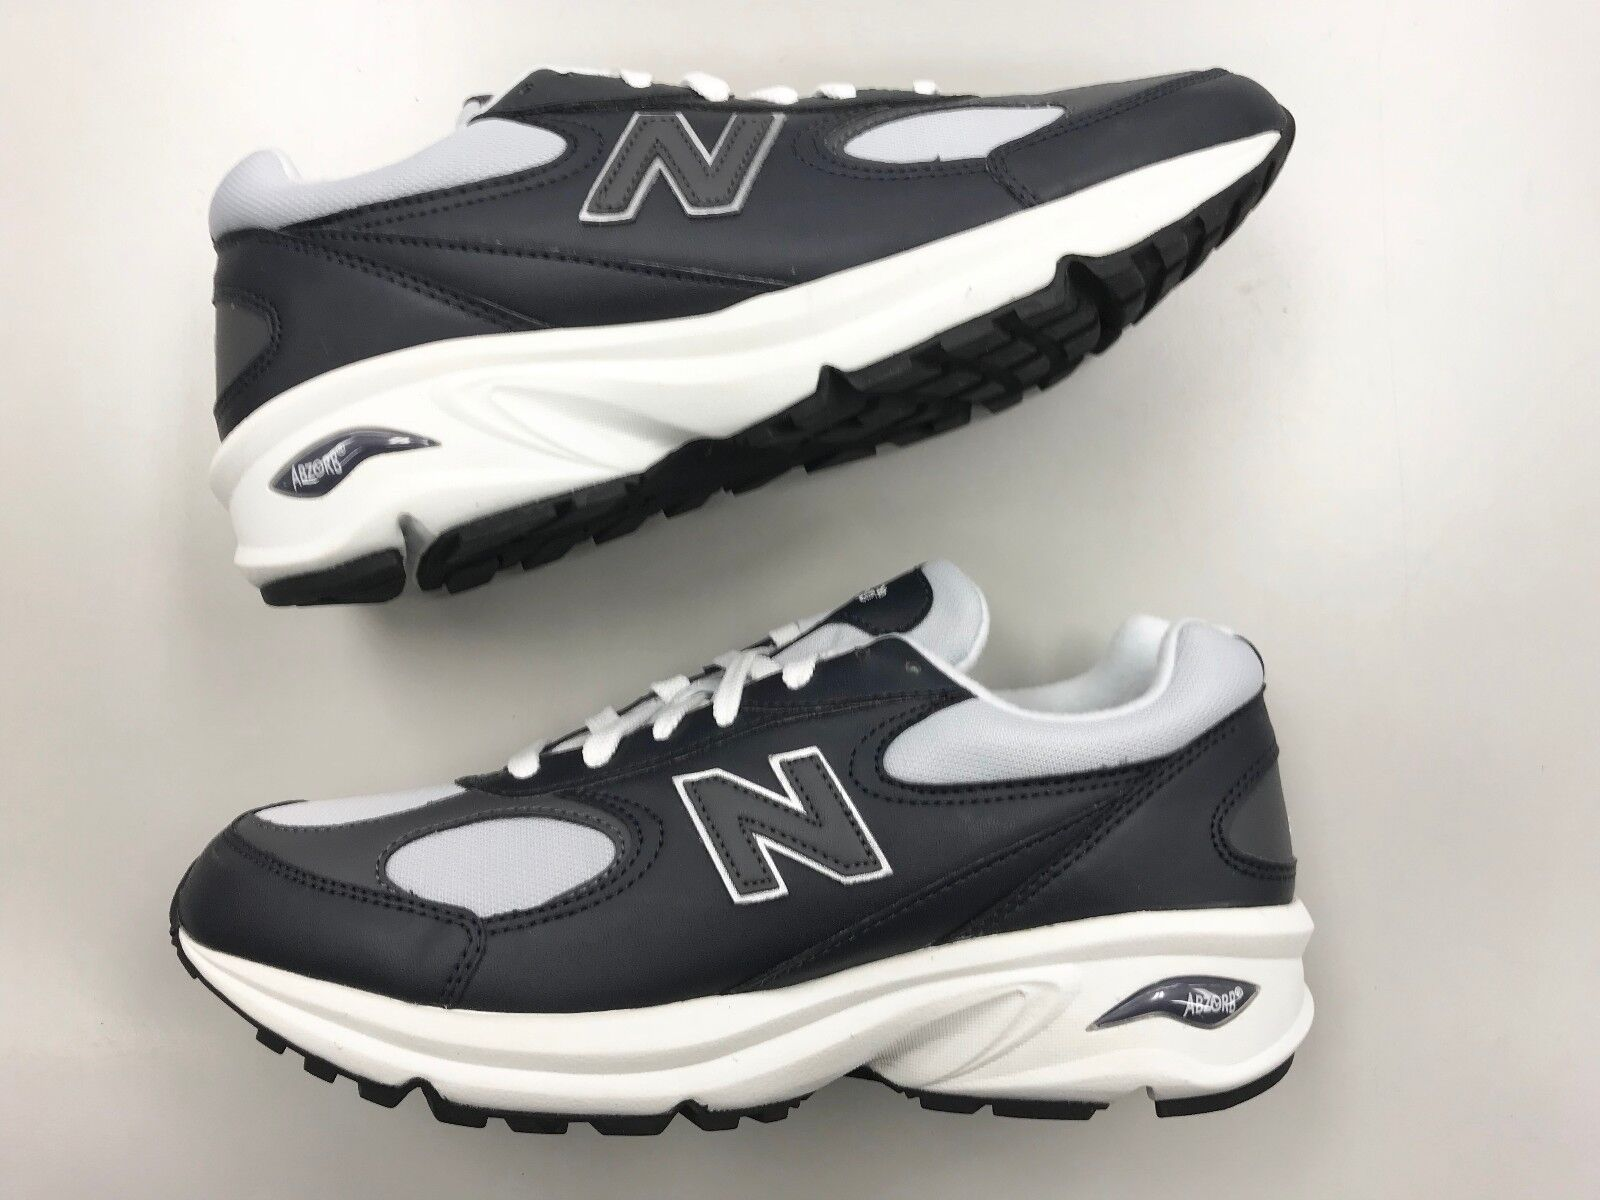 Brand New hommes New Balance M498 FFB Navy Leather running walking chaussures 0 9 7 1